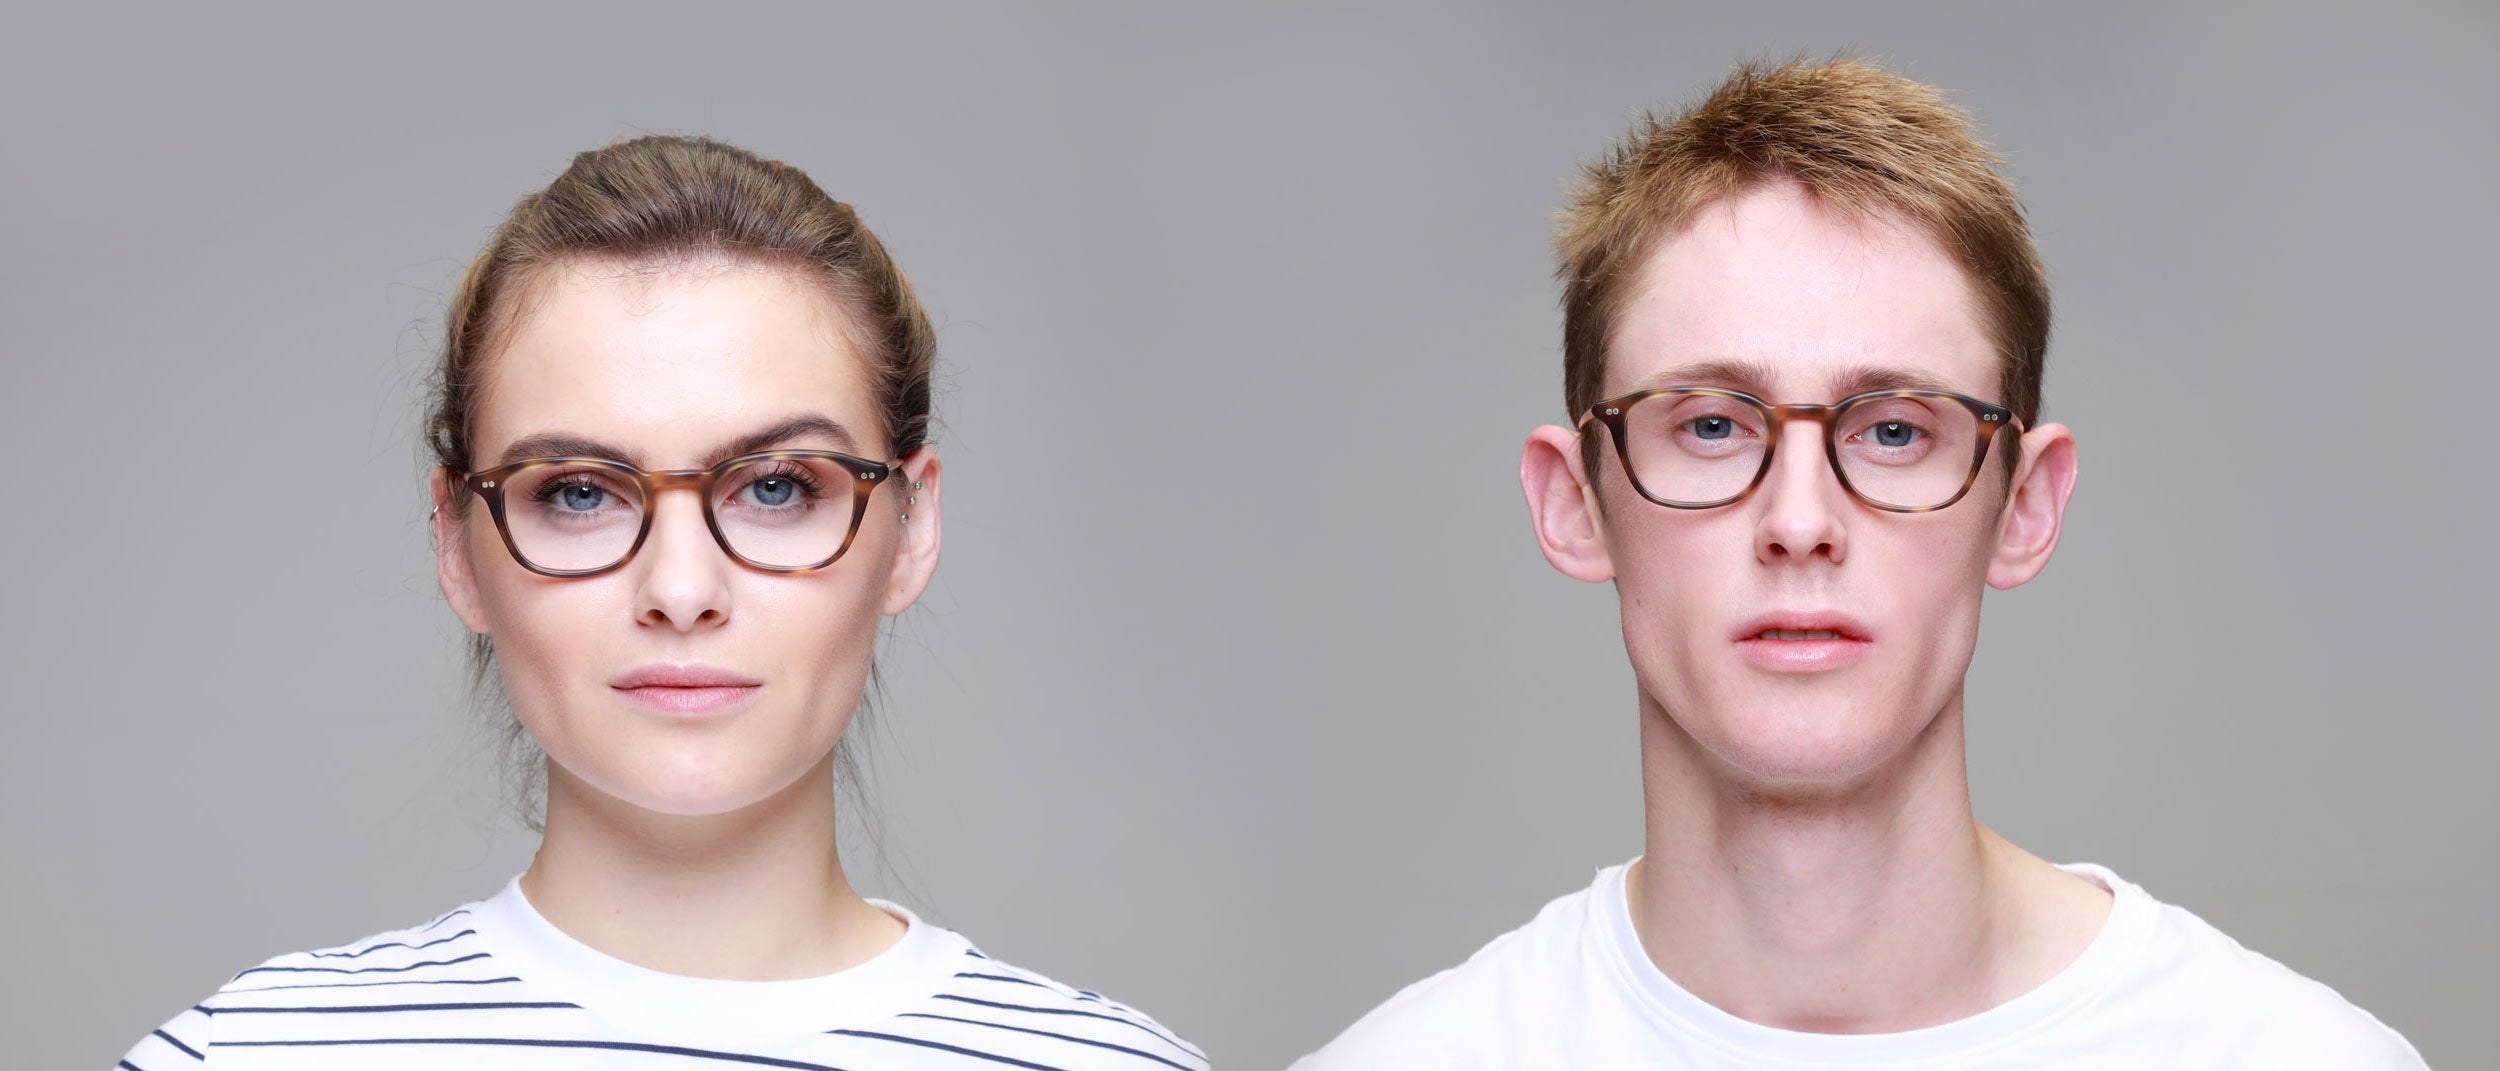 Man-and-Woman-Wearing-Varifocal-Tortoiseshell-rectangle-frame-glasses